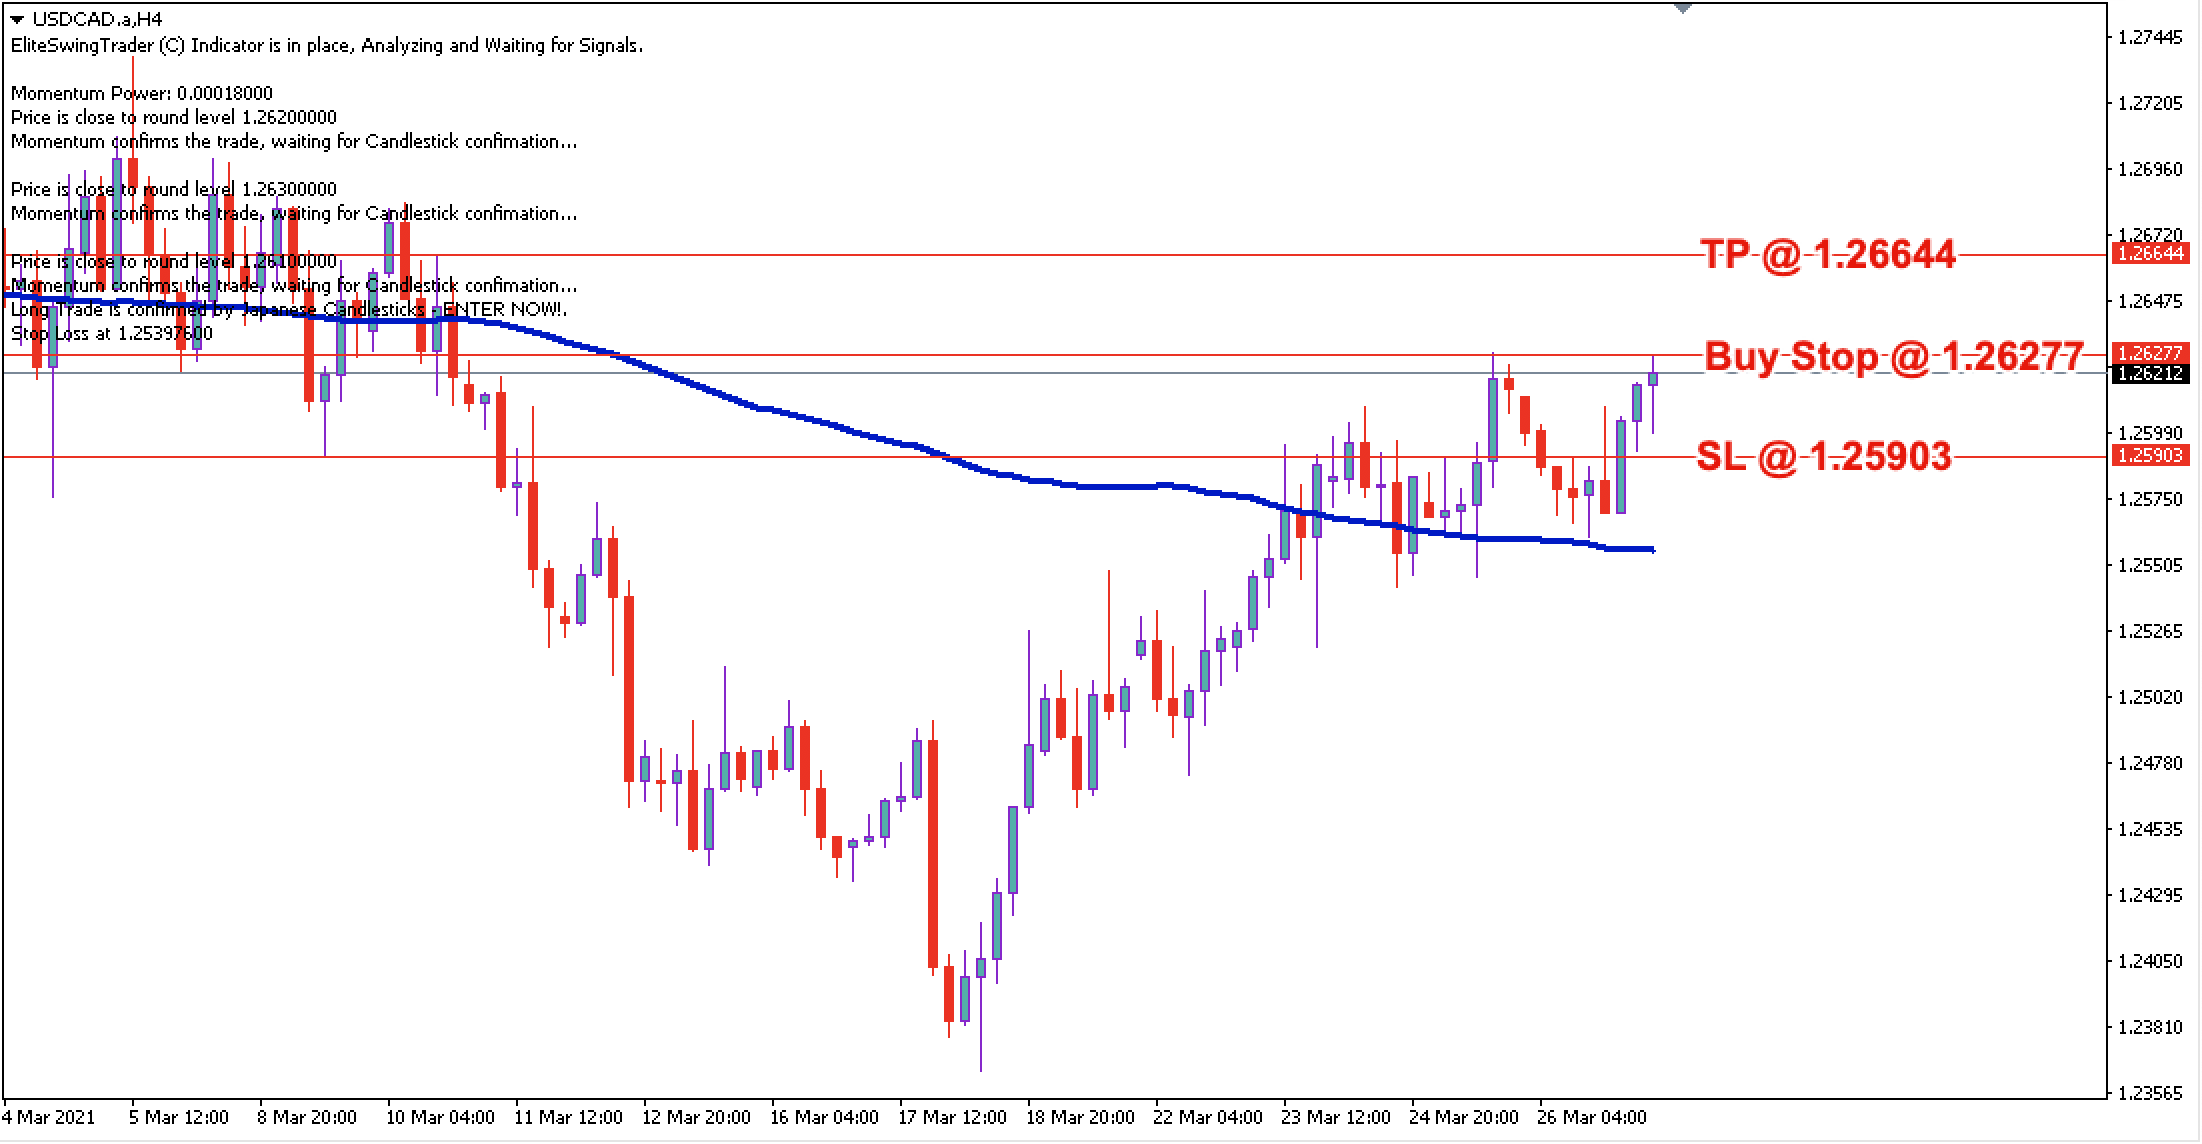 USD/CAD Daily Price Forecast - 29th March 2021